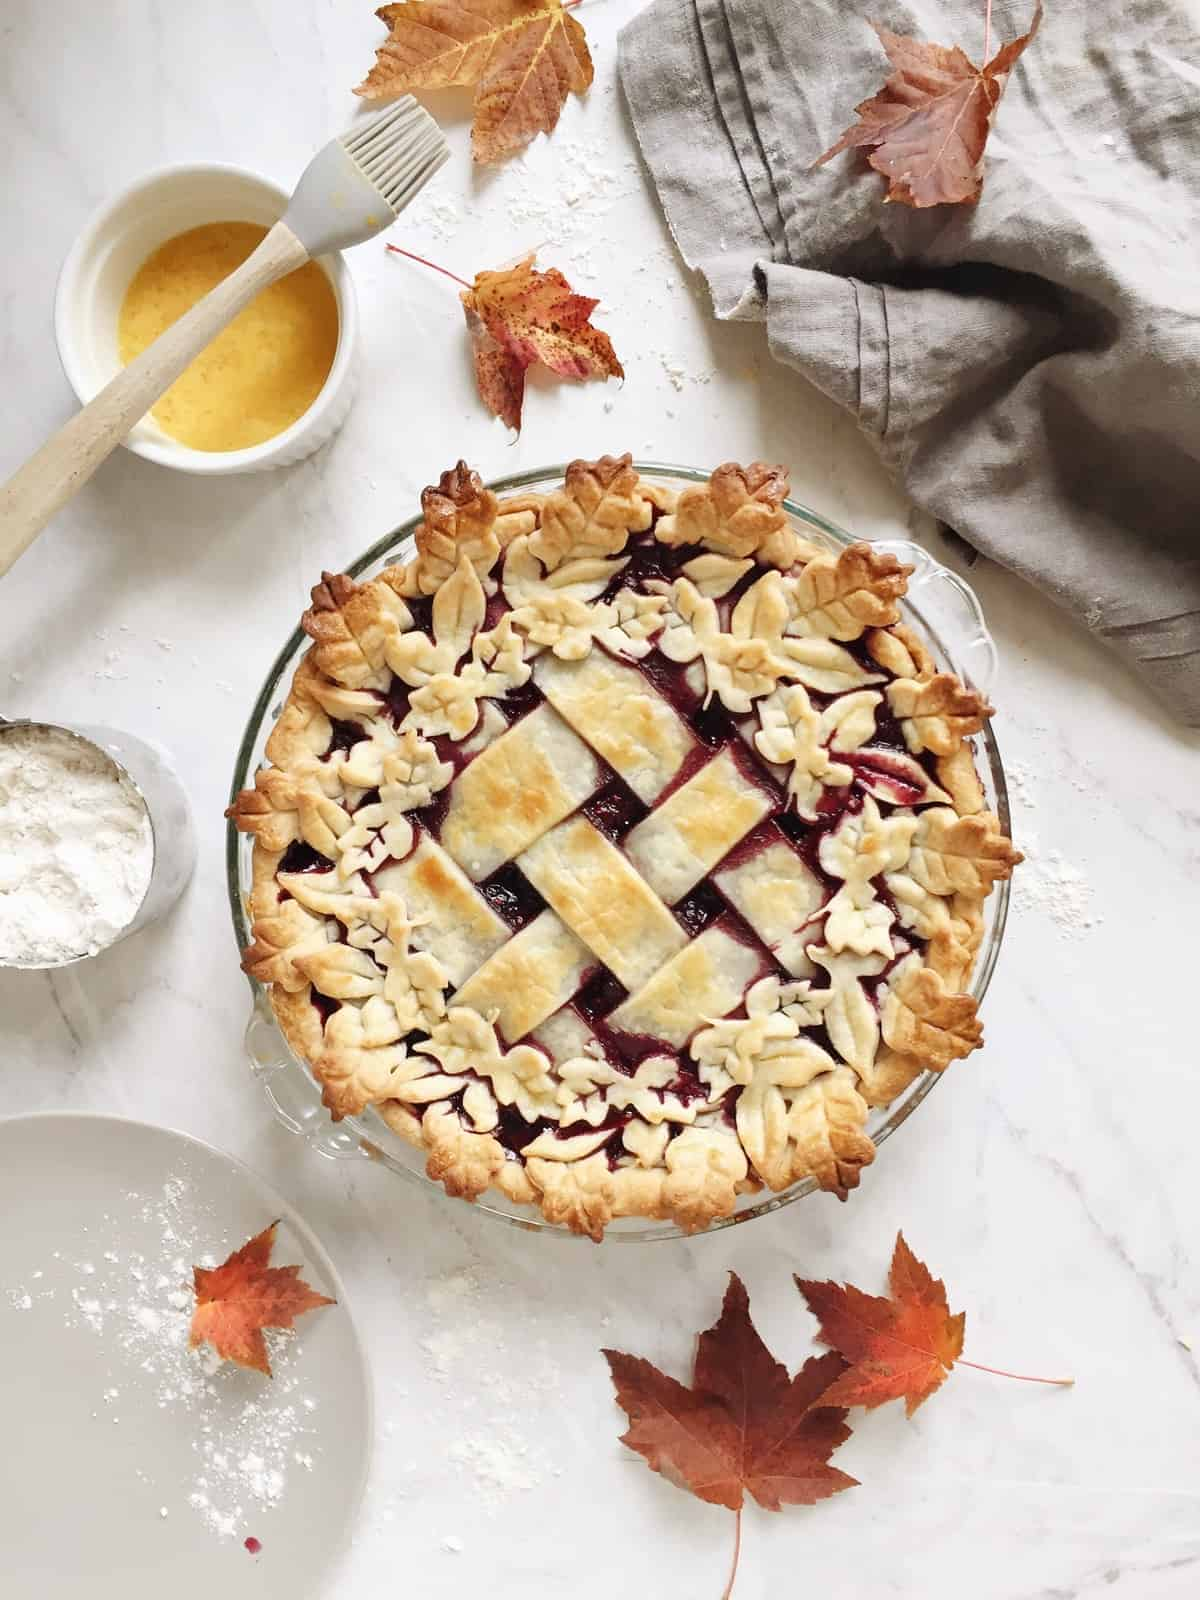 How to Make a Lattice Pie Crust Video + Decorative Leaf Pie Crust | homemade pie crust, pie crust tutorial, lattice pie crust tutorial, decorative pie crust tutorial, how to make a homemade pie crust || The Butter Half via @thebutterhalf #piecrust #pietutorial #homemadepie #bakingtips